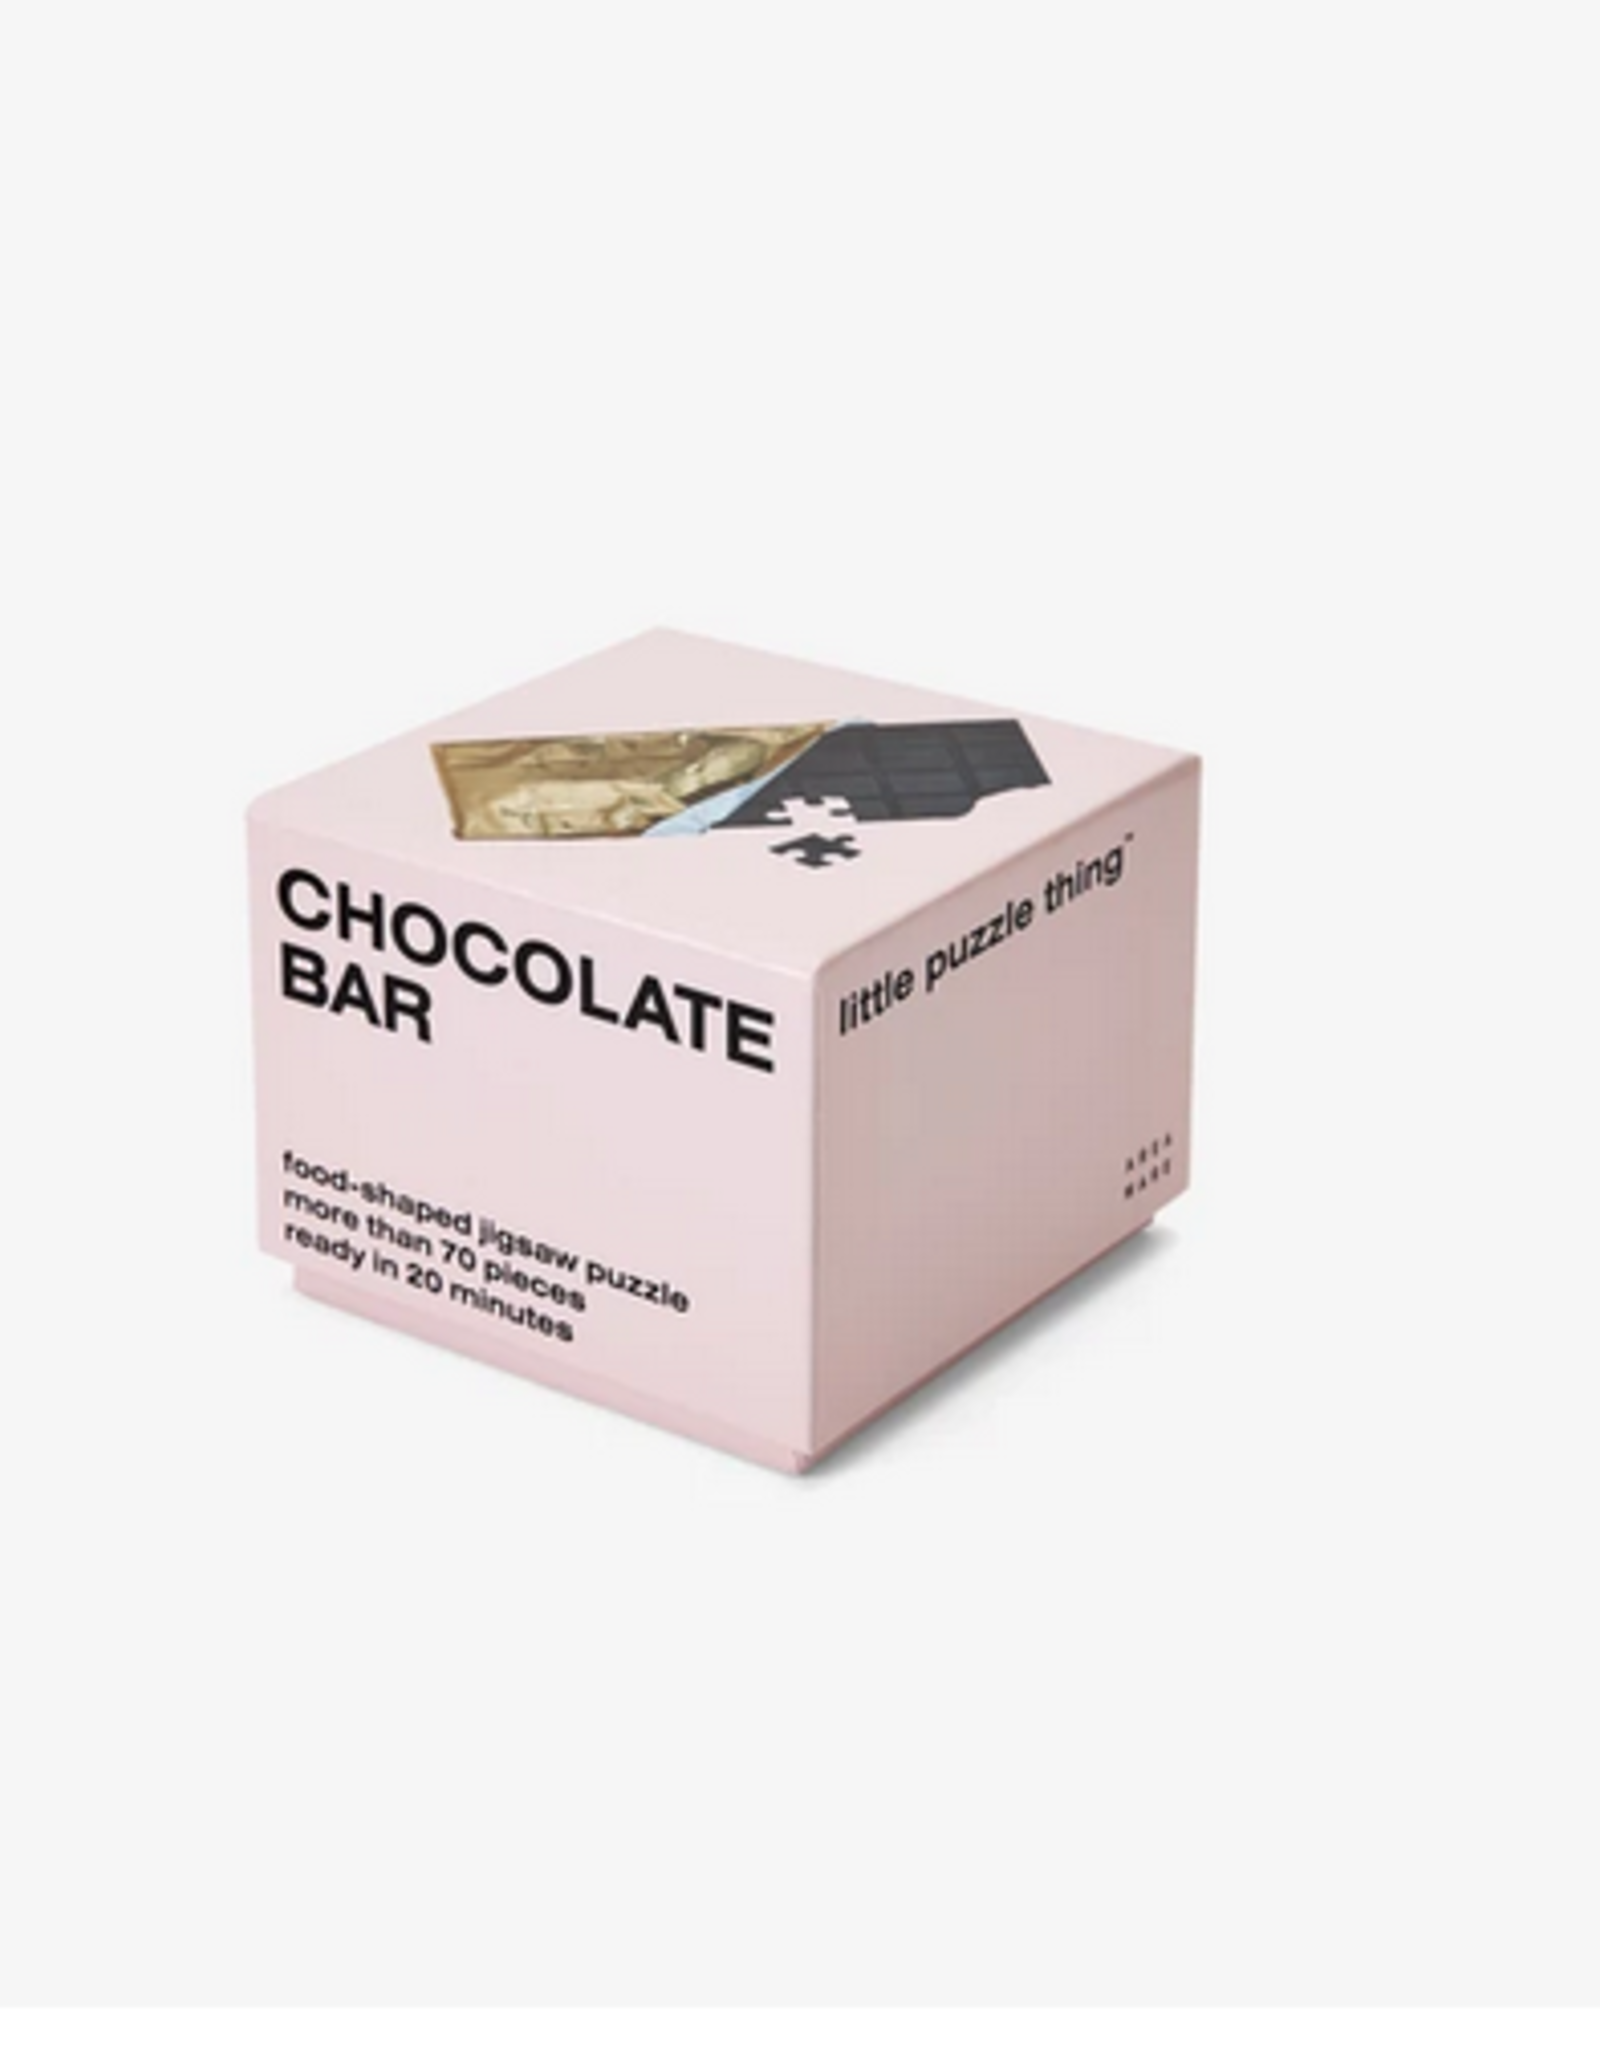 Areaware Little puzzle things Chocolate bar